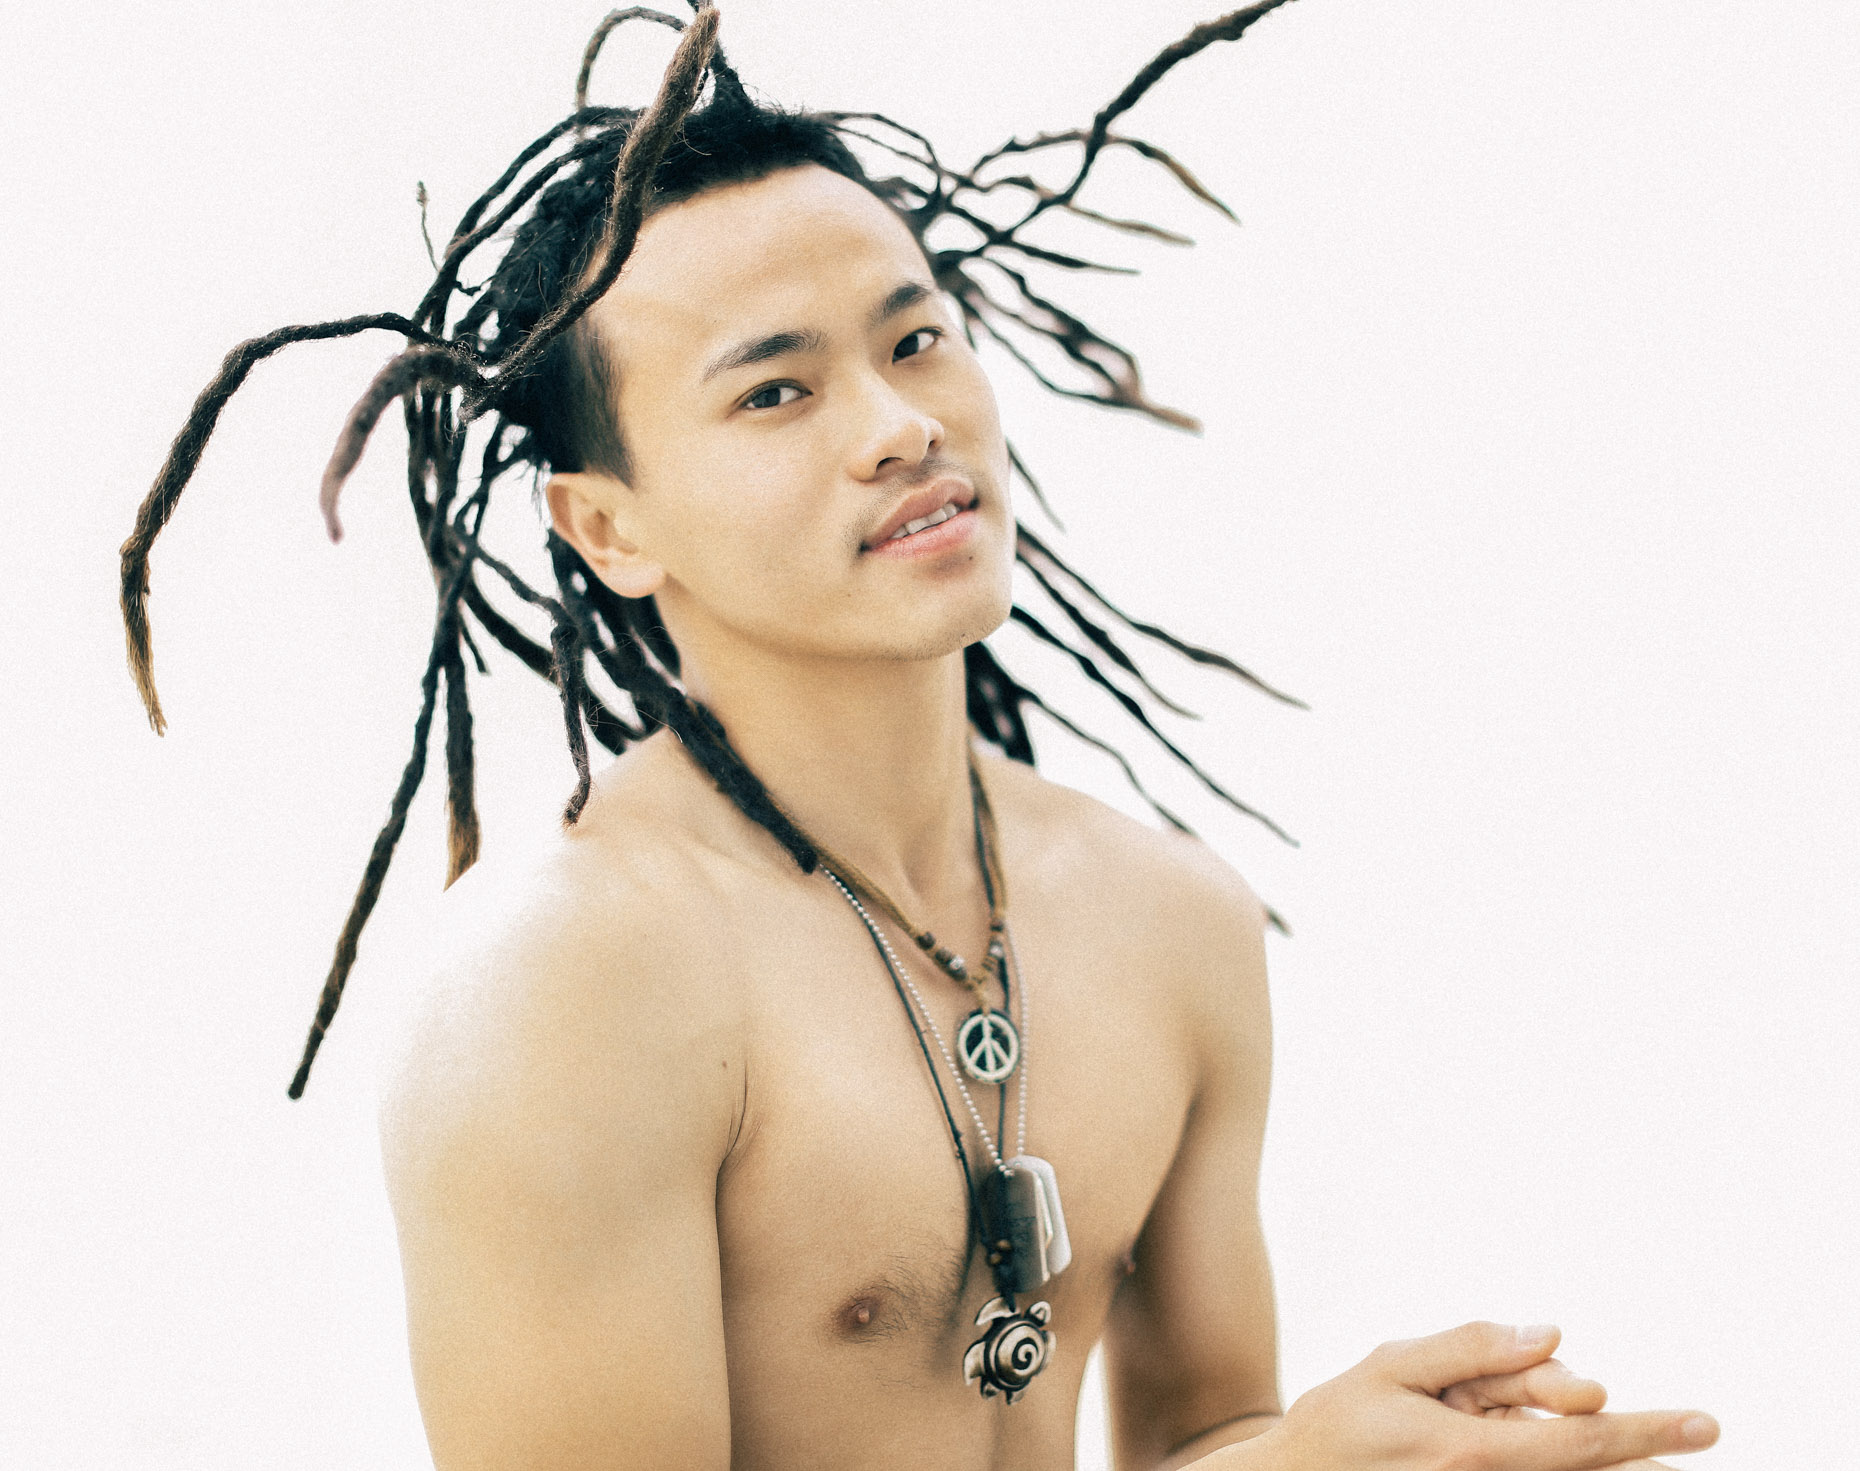 Shirtless asian man with dreadlocks and many necklaces